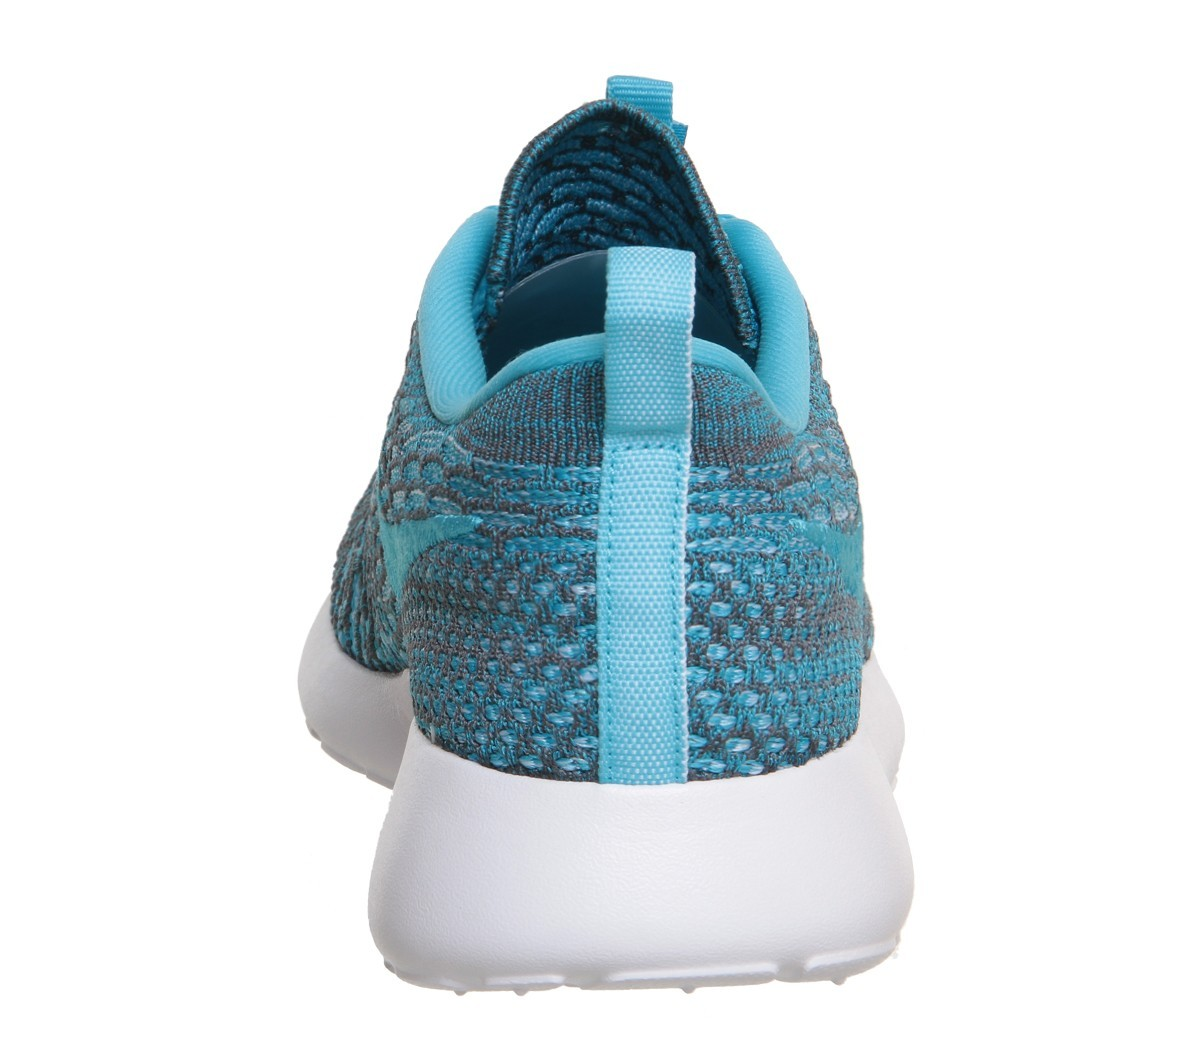 Nike Roshe One Flyknit Femme Clear Water Grise Le Meilleur Choix  - Nike Roshe One Flyknit Femme Clear Water Grise Le Meilleur Choix-01-4